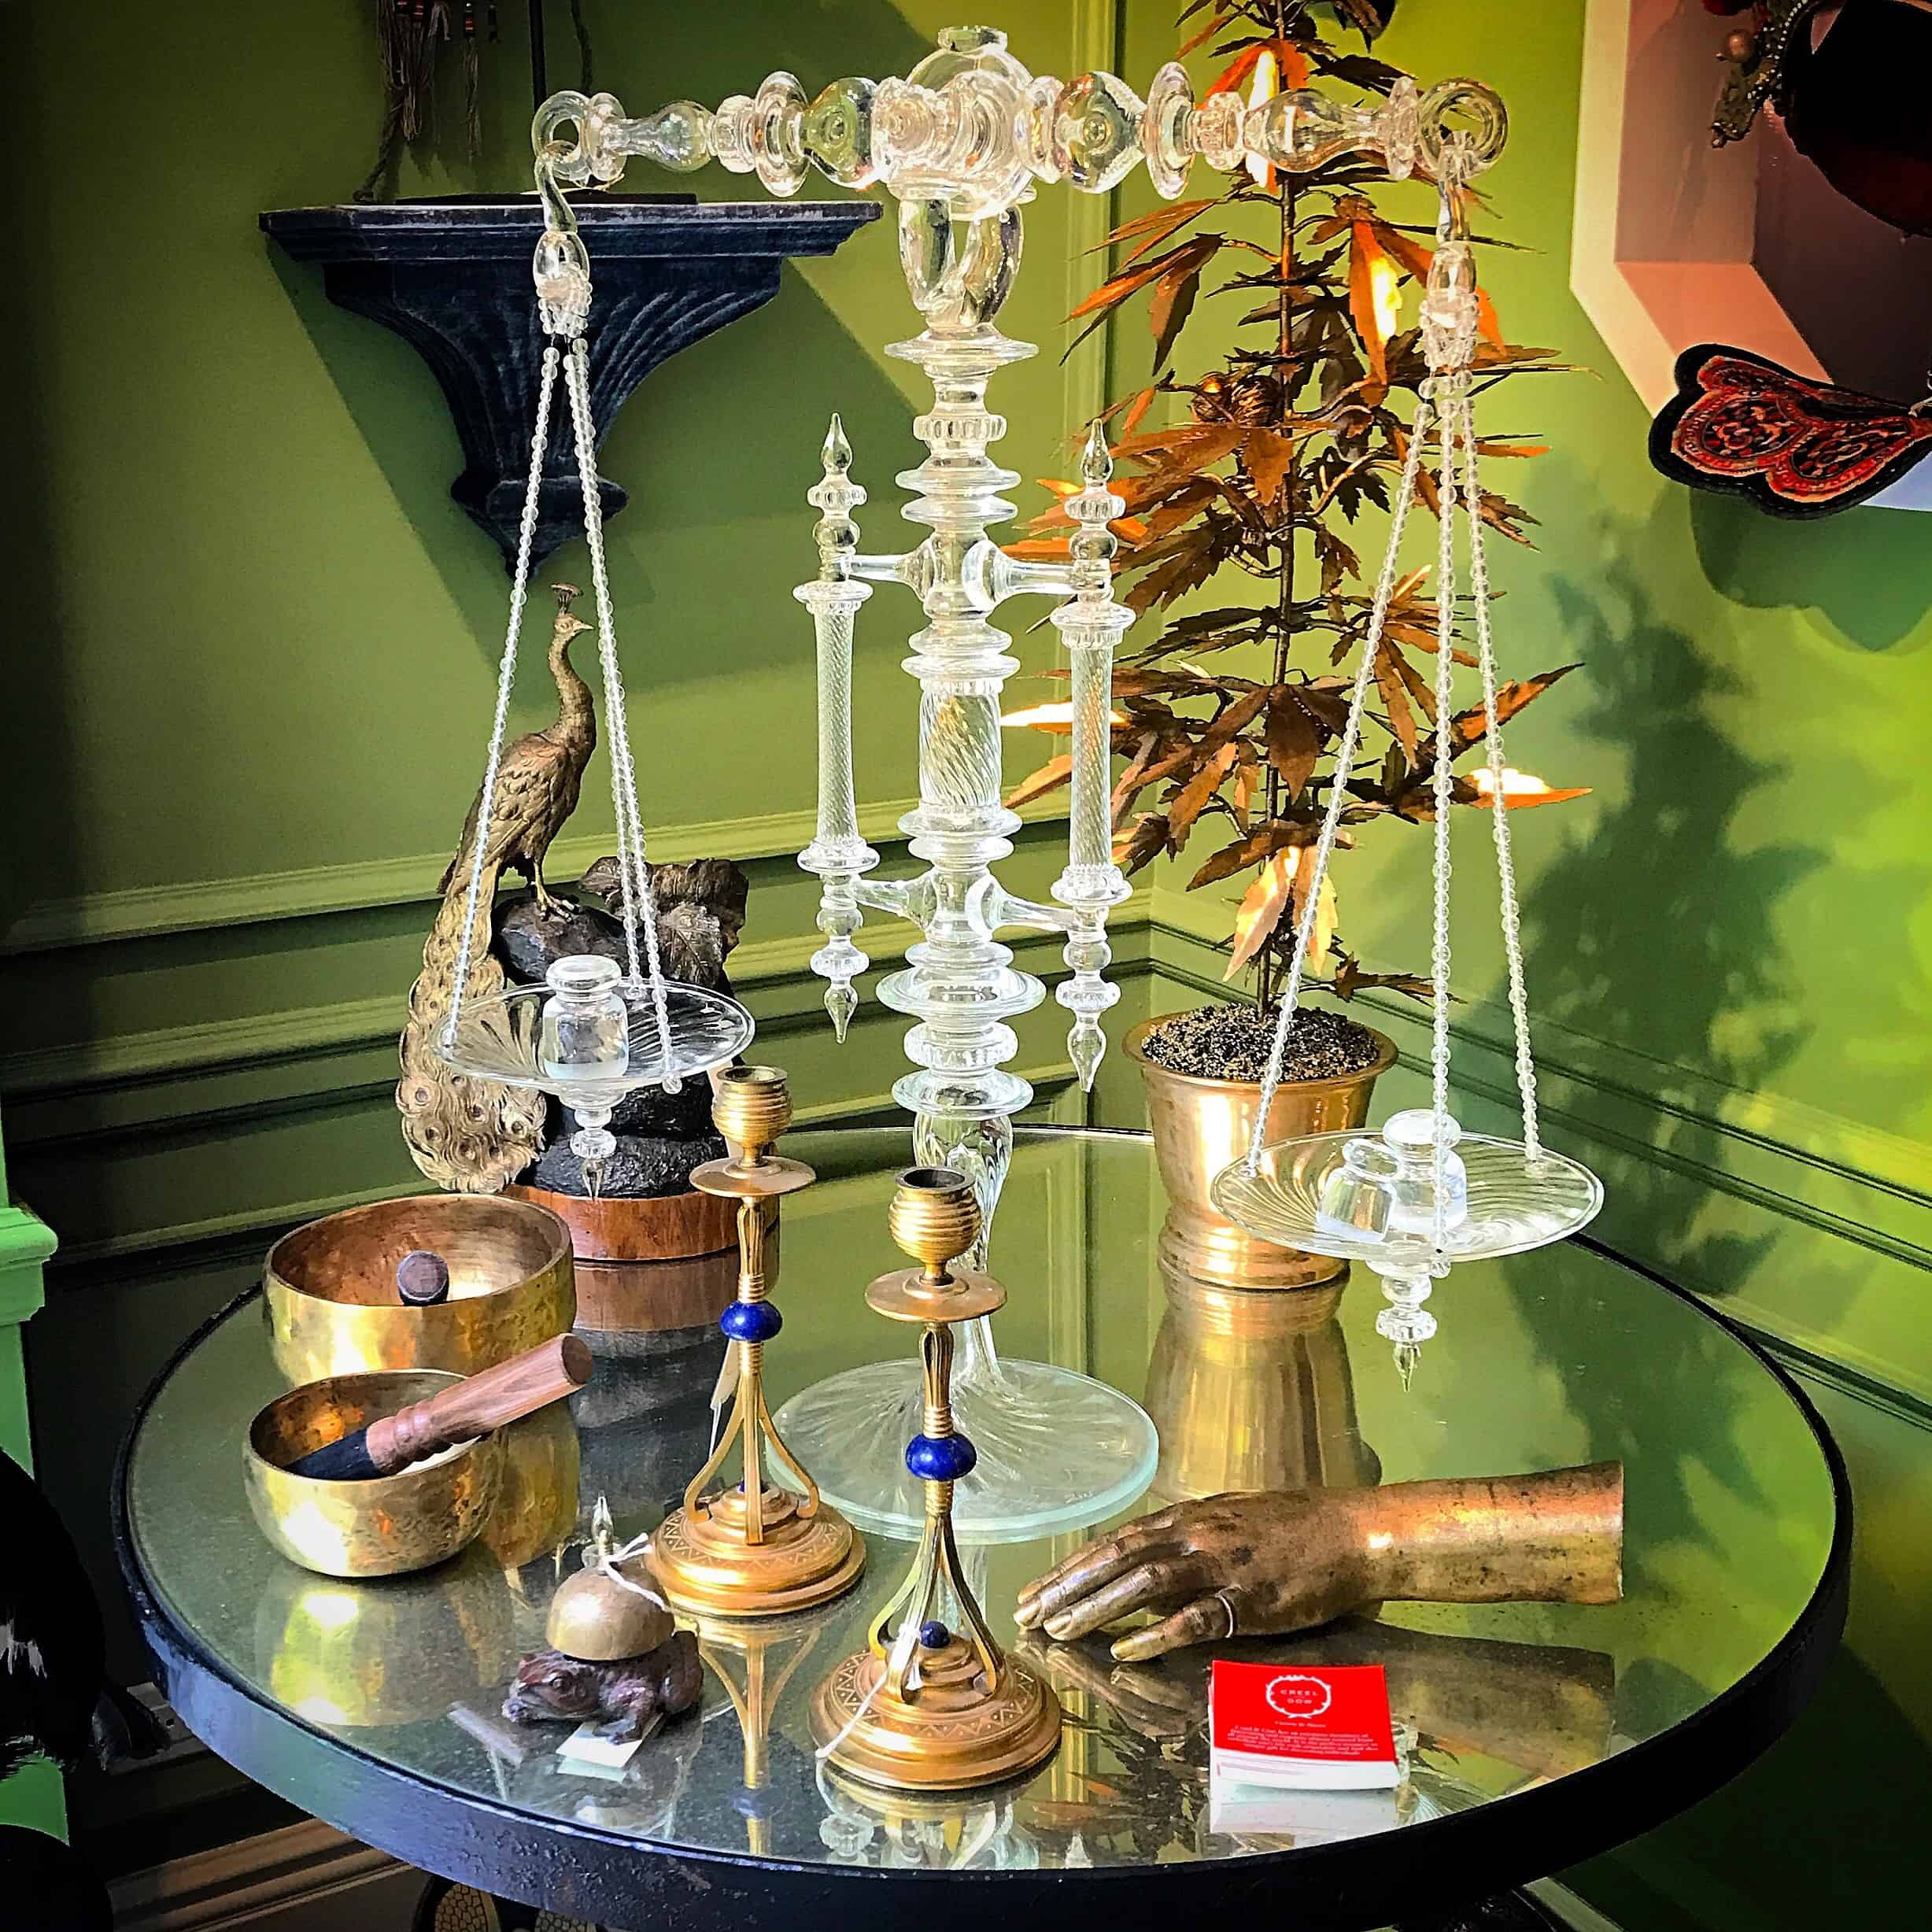 Interior with Table in front of green wall with glass scale, candlesticks, bronze hand